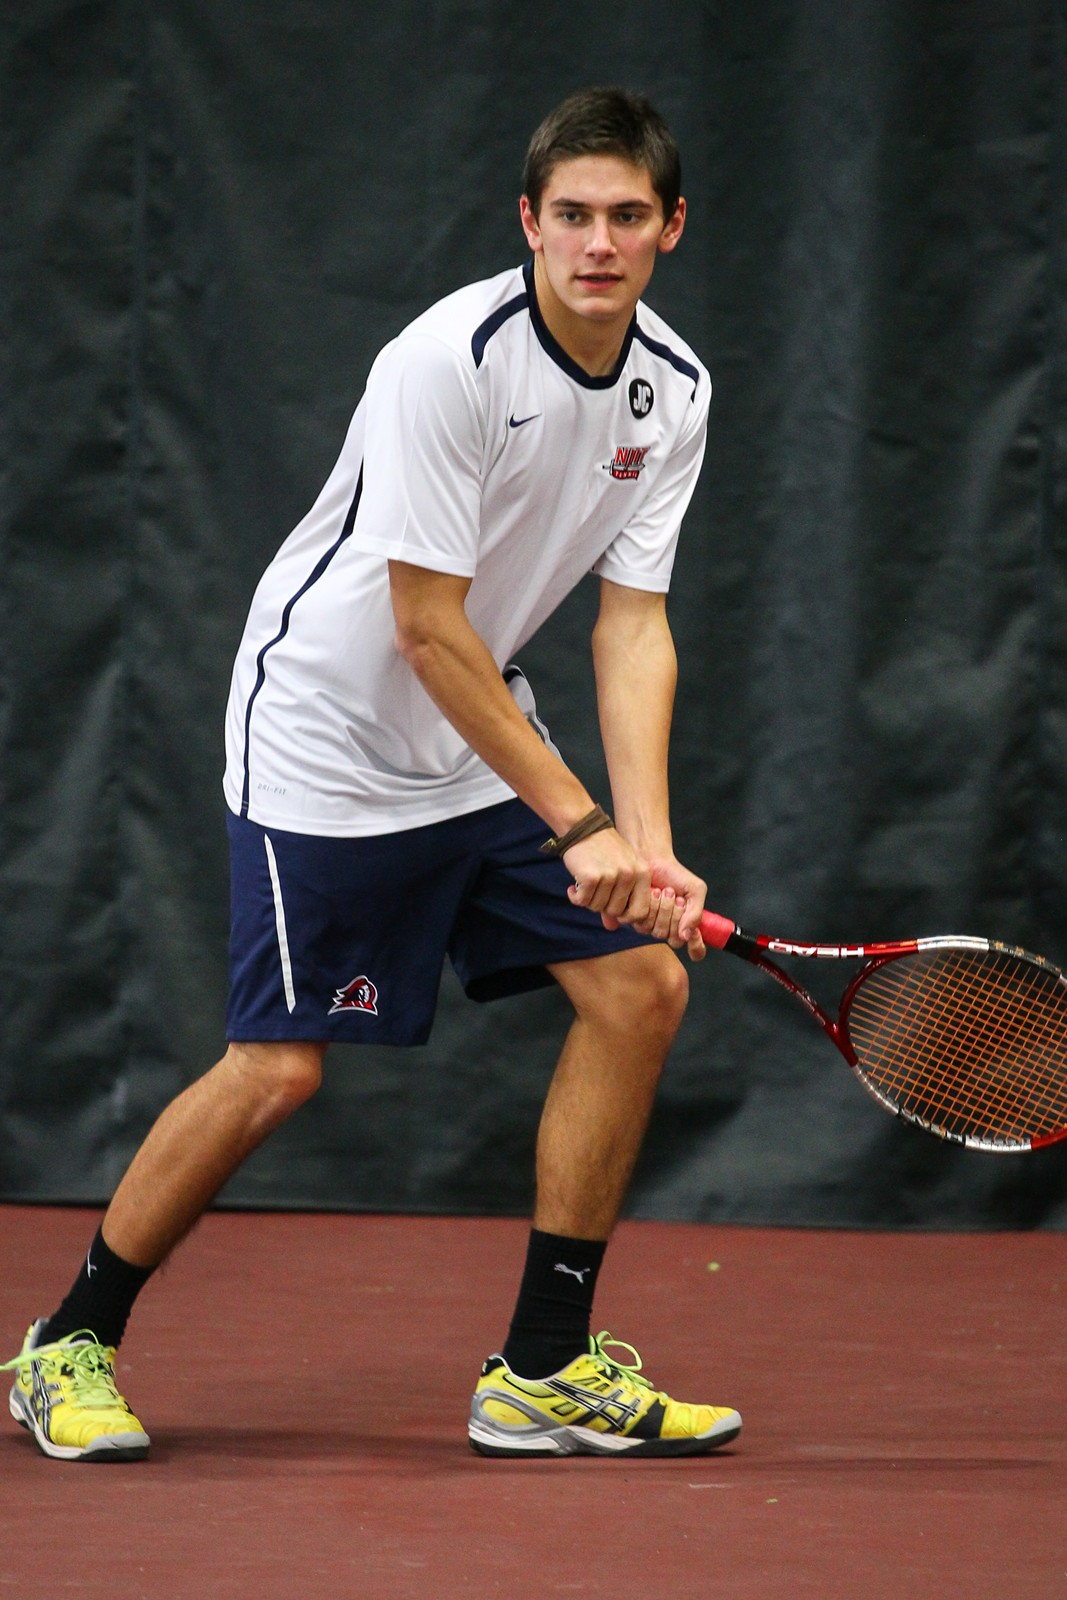 Schultz and Cimrman Represent NJIT at Ivy Plus Tournament